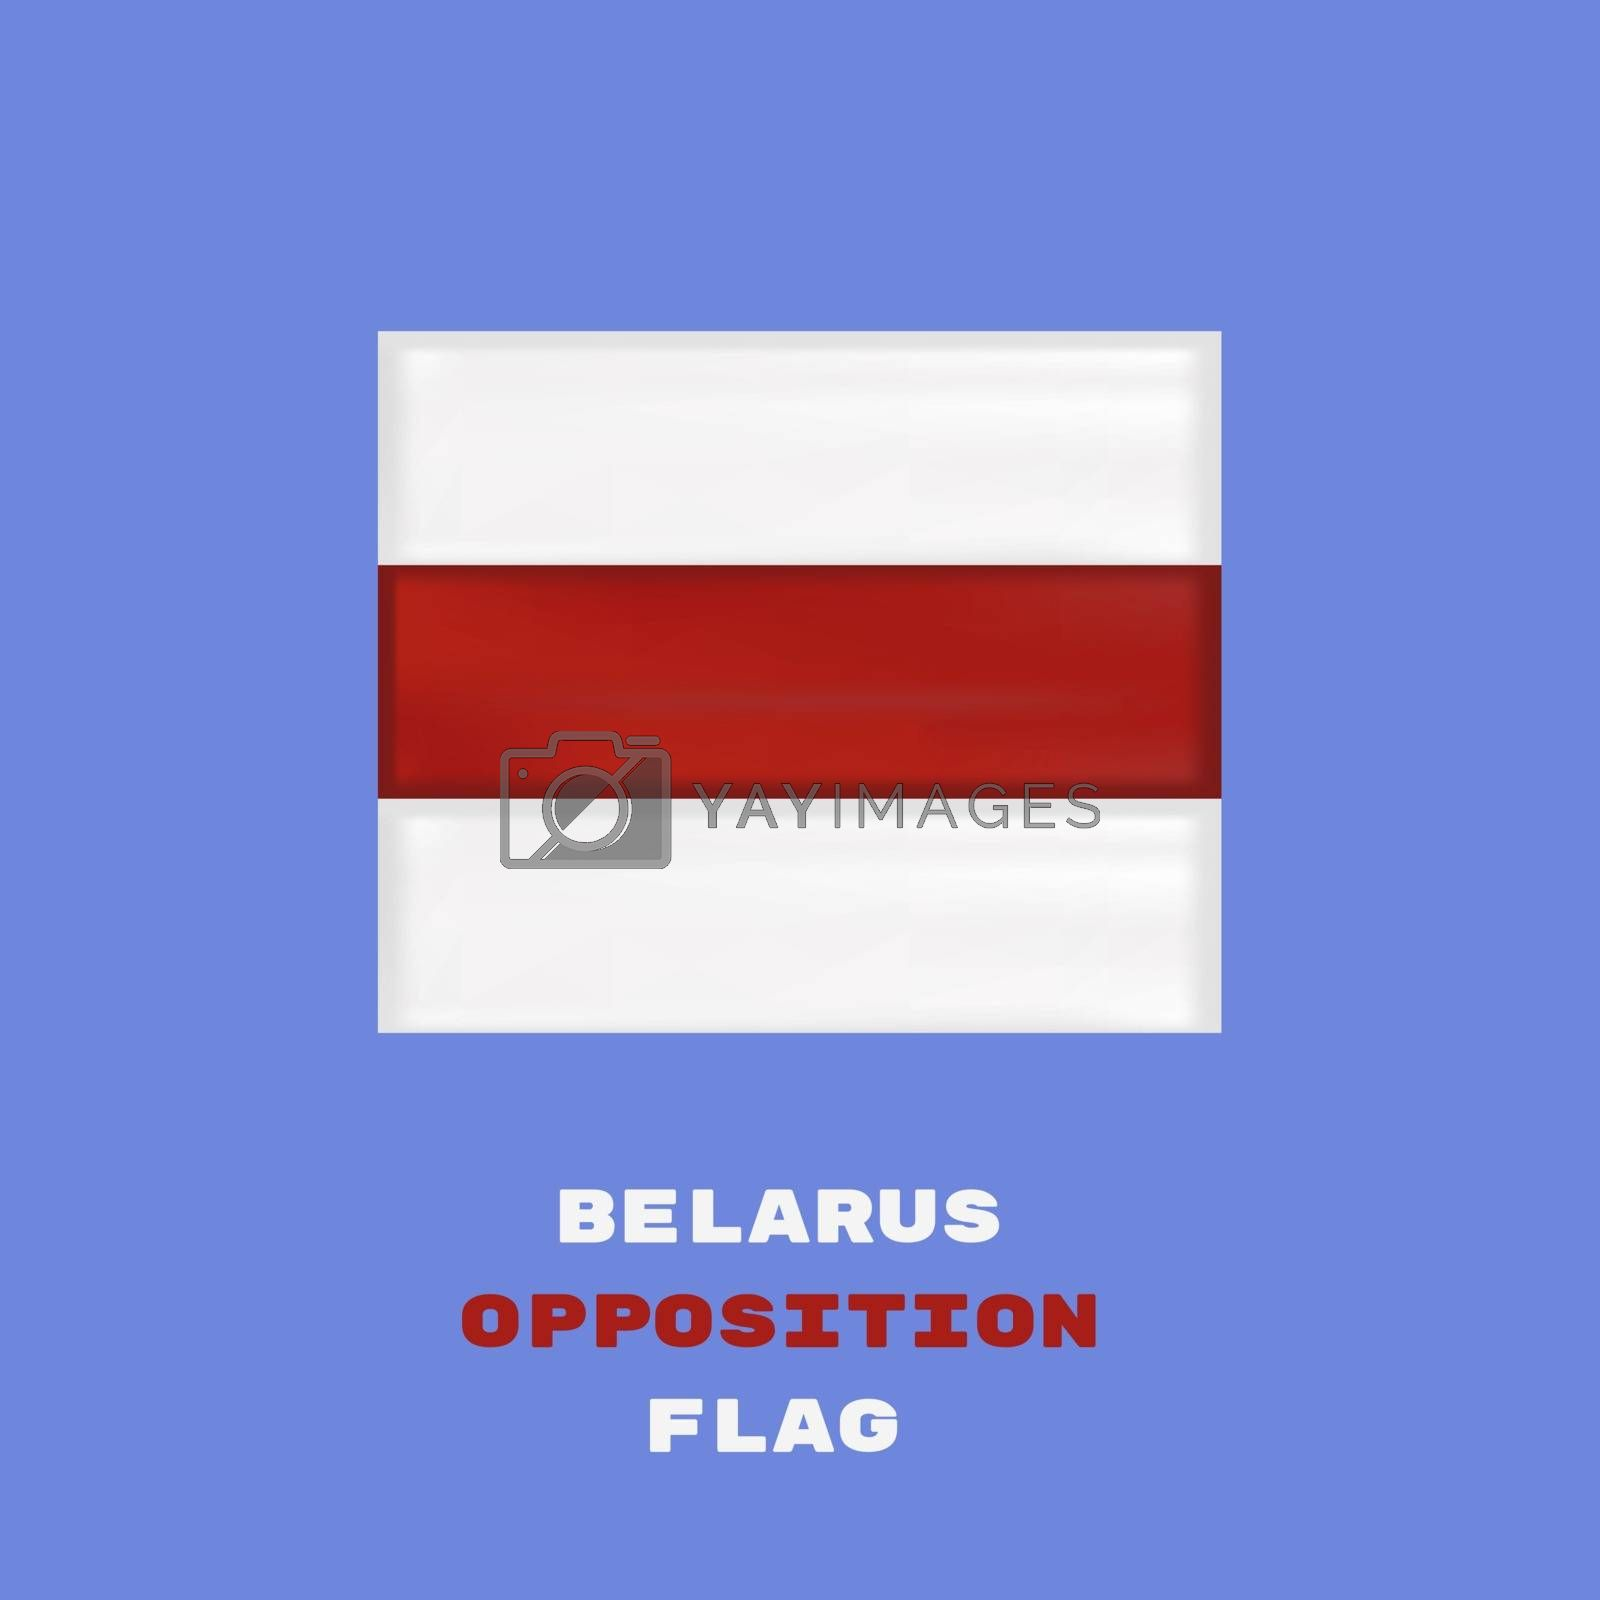 Belarus White-red-white opposition flag. Protests in Belarus.